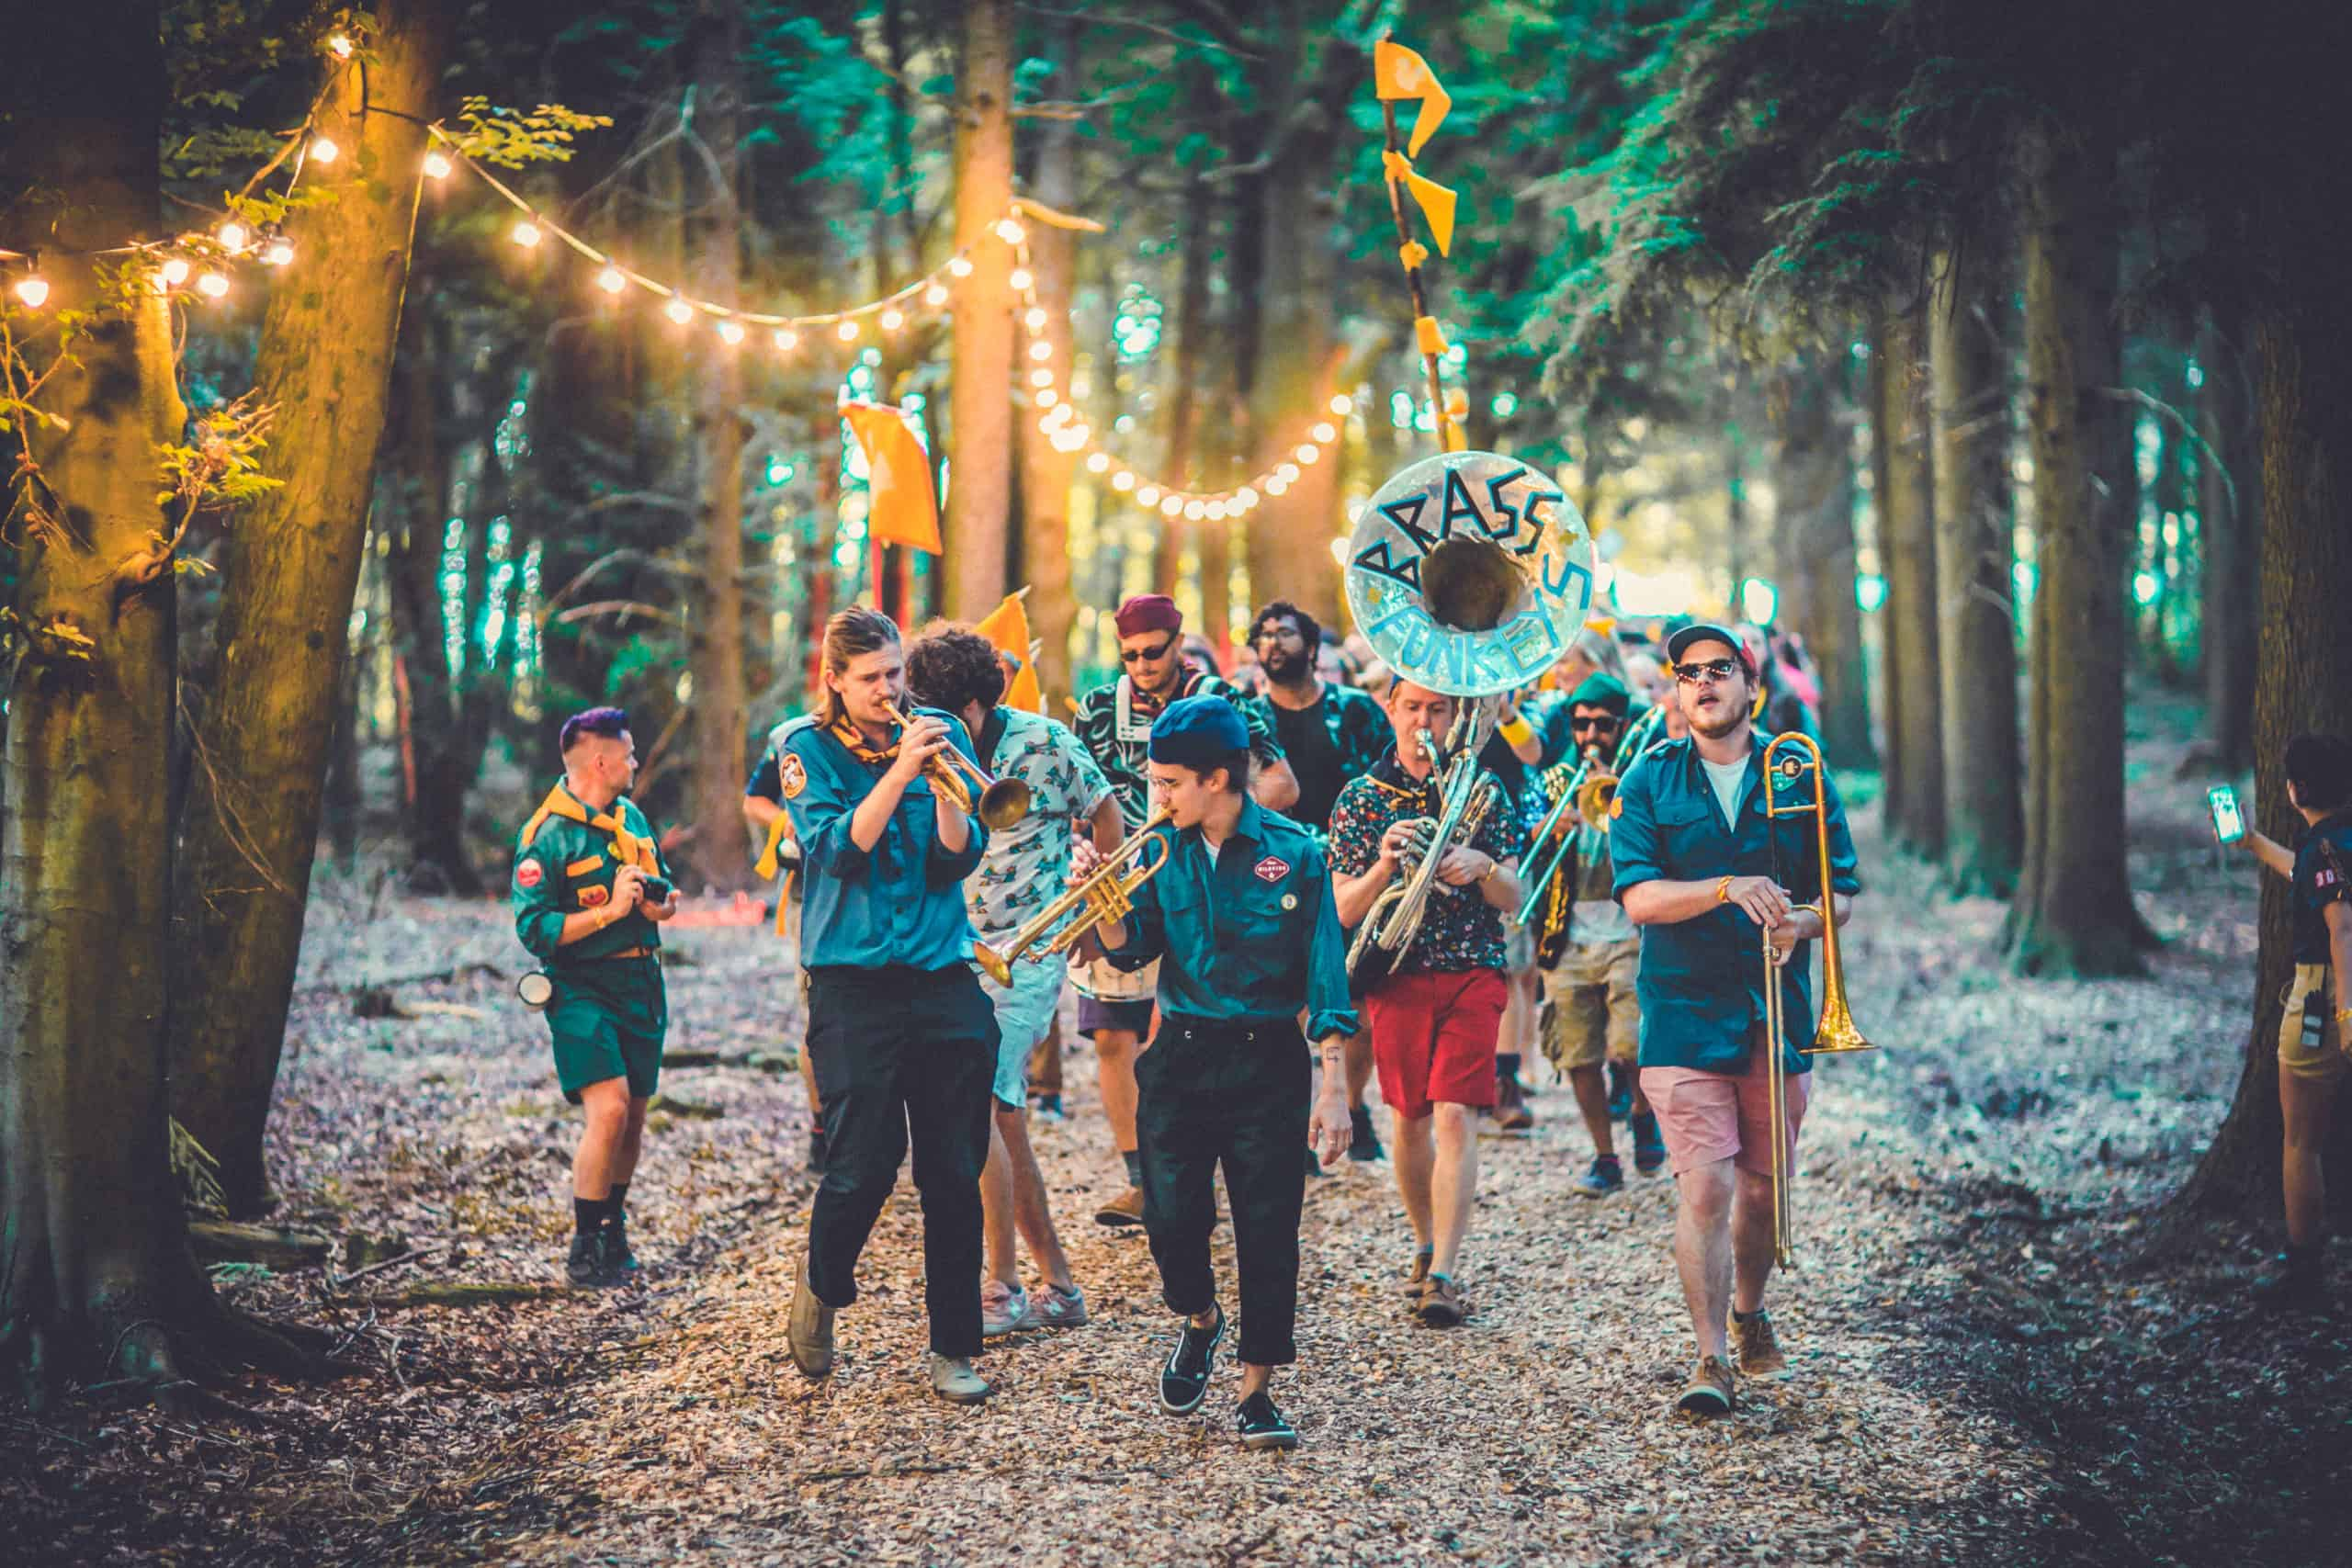 Adventurers in patrol uniforms with instruments marching in the Camp Wildfire parade. A summer weekend break in a forest near London and Kent. An outdoor woodland retreat featuring adventure activities, live music, DJs, parties and camping. Half summer adventure activity camp, half music festival, for adults only.